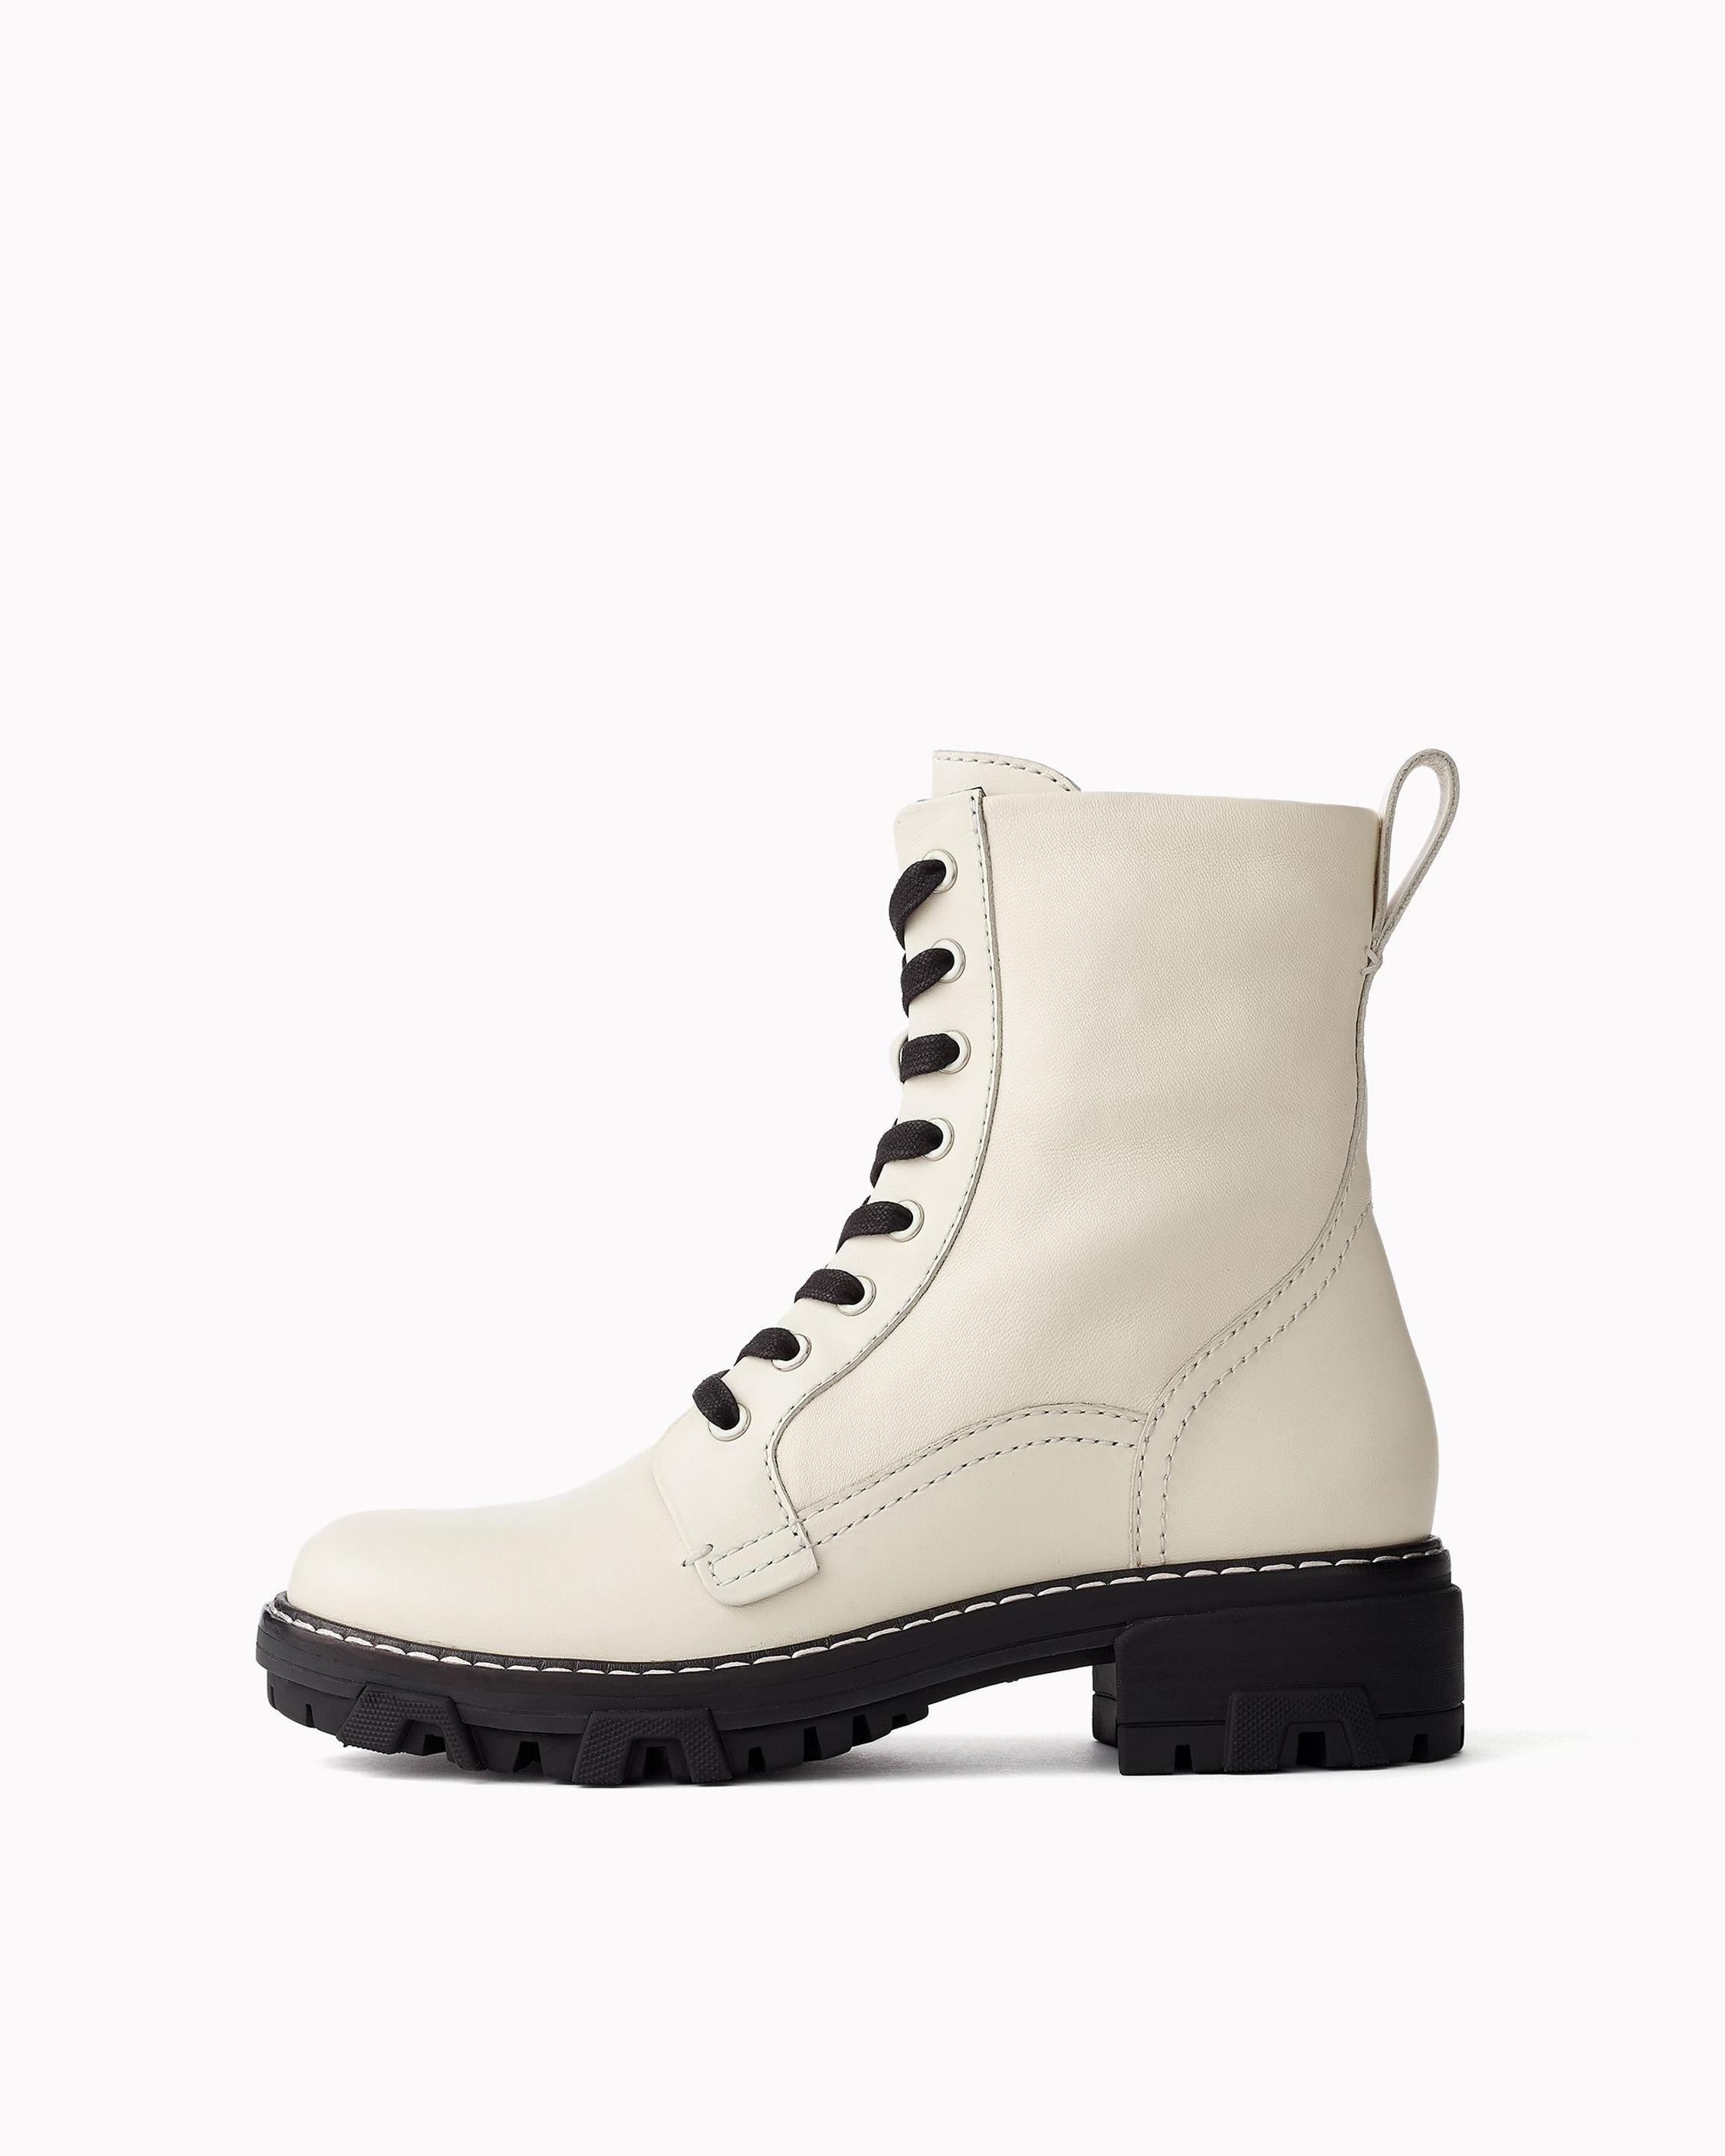 Shiloh boot - leather